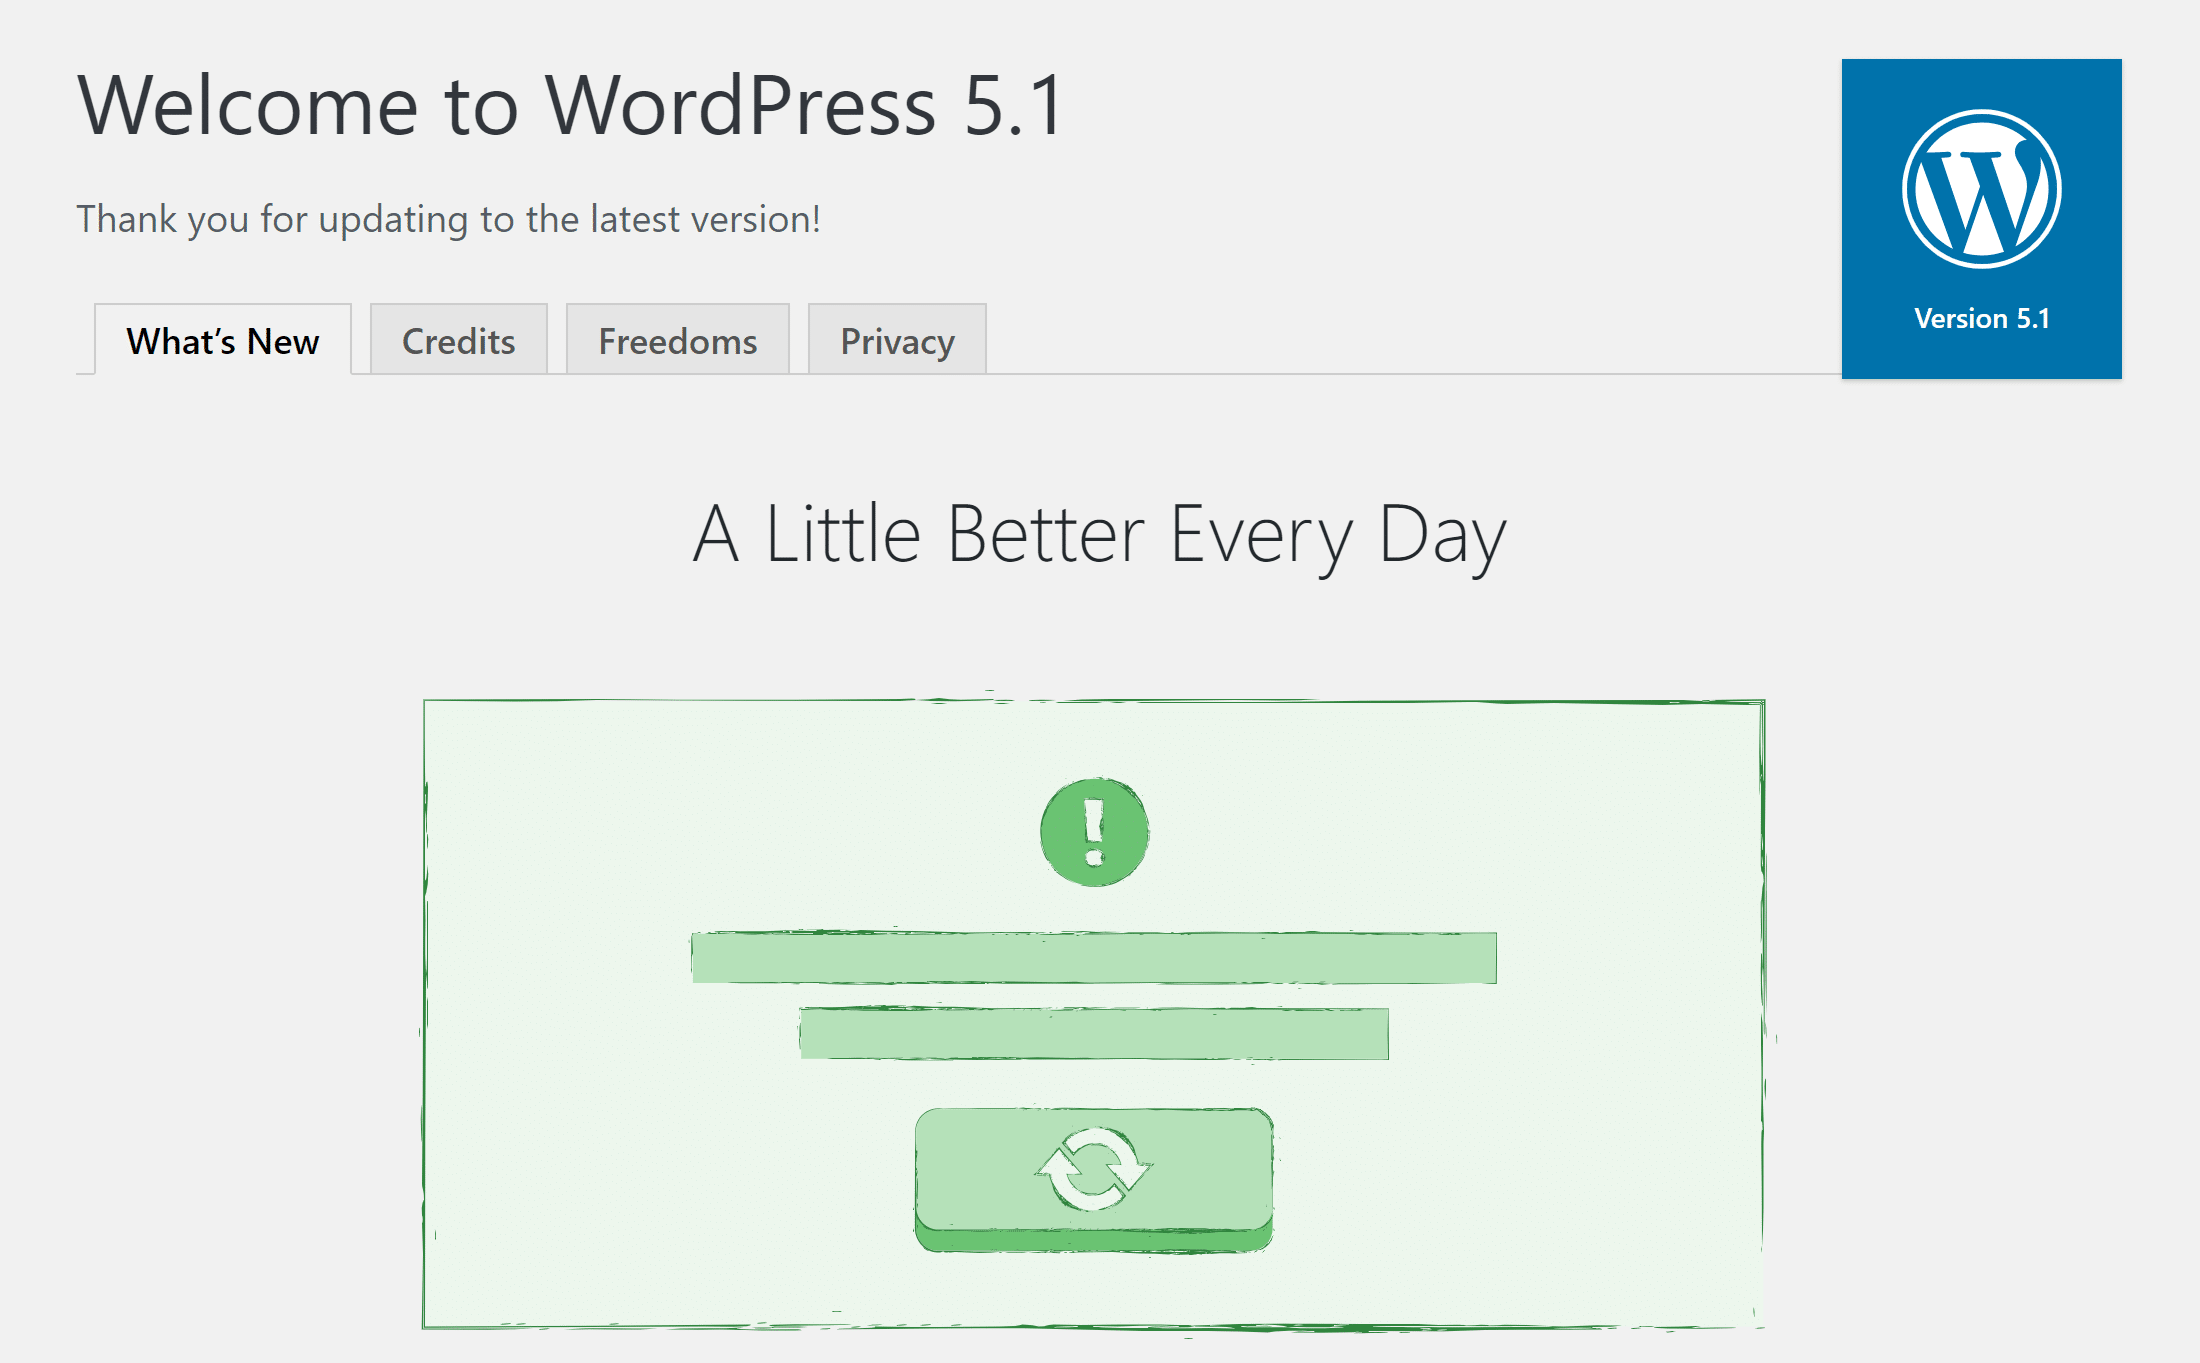 The WordPress 5.1 welcome screen